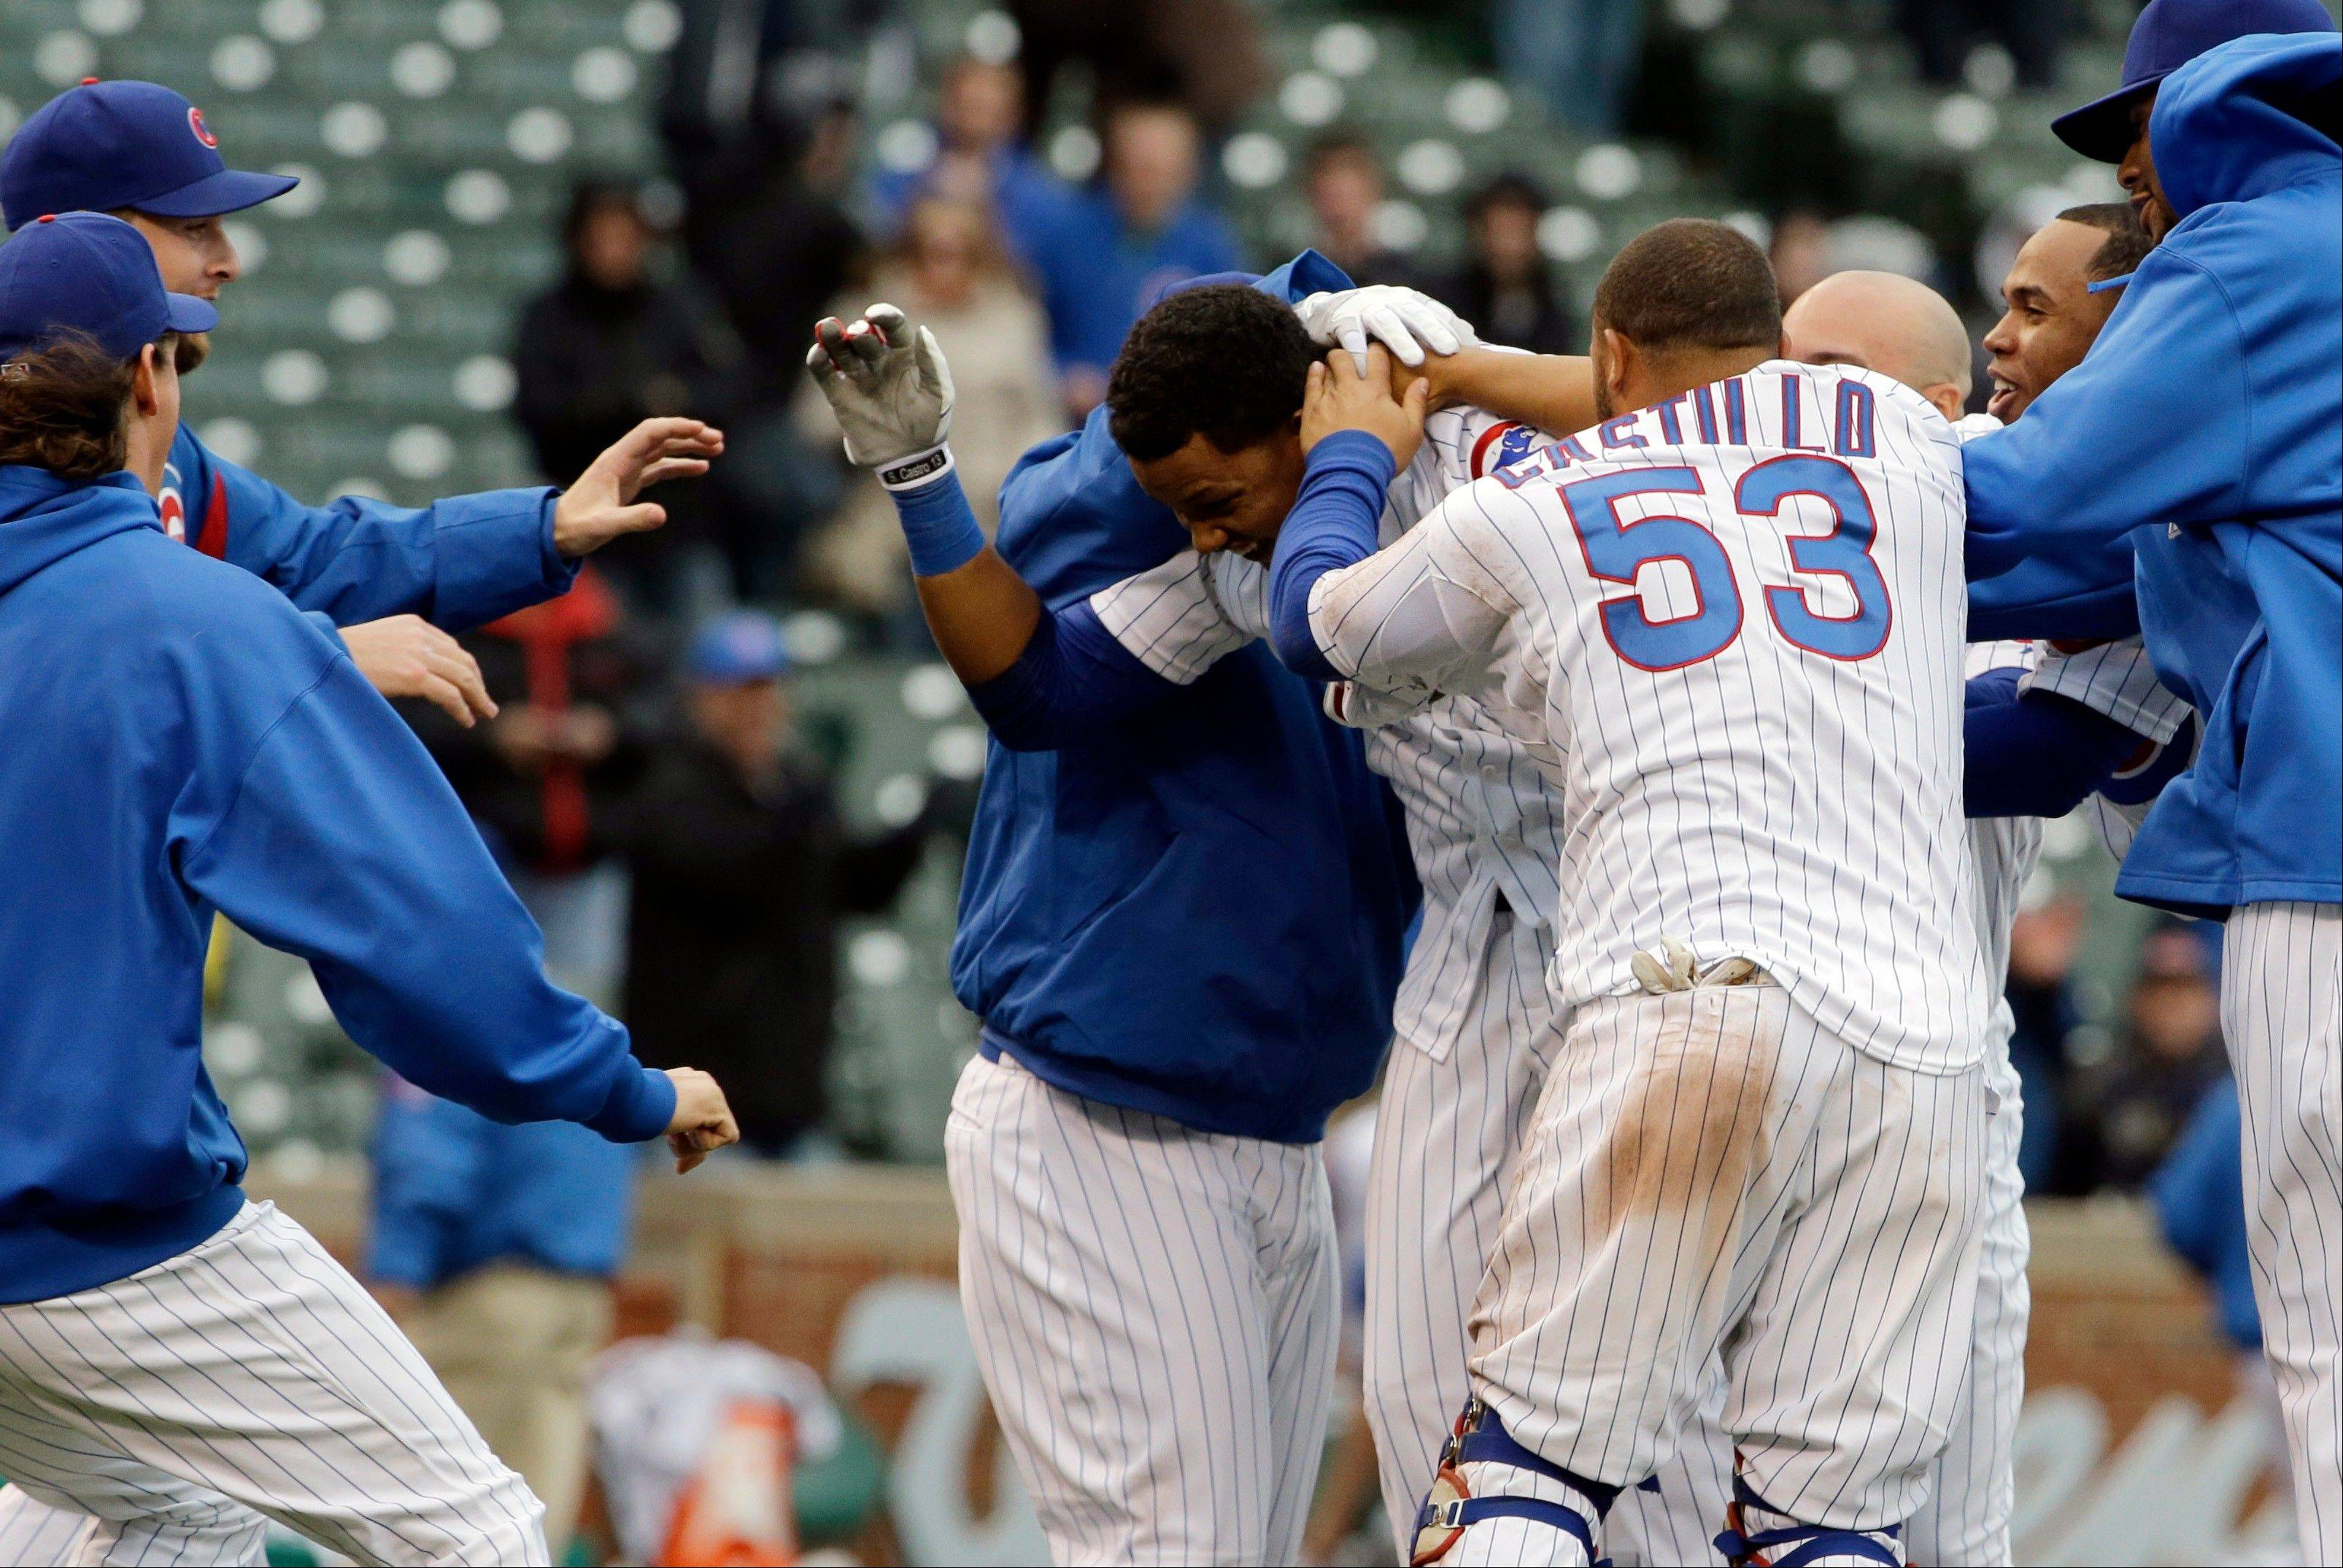 The Cubs� Starlin Castro, center, celebrates with teammates after hitting a game-winning double against the Giants in the ninth inning Friday at Wrigley Field.